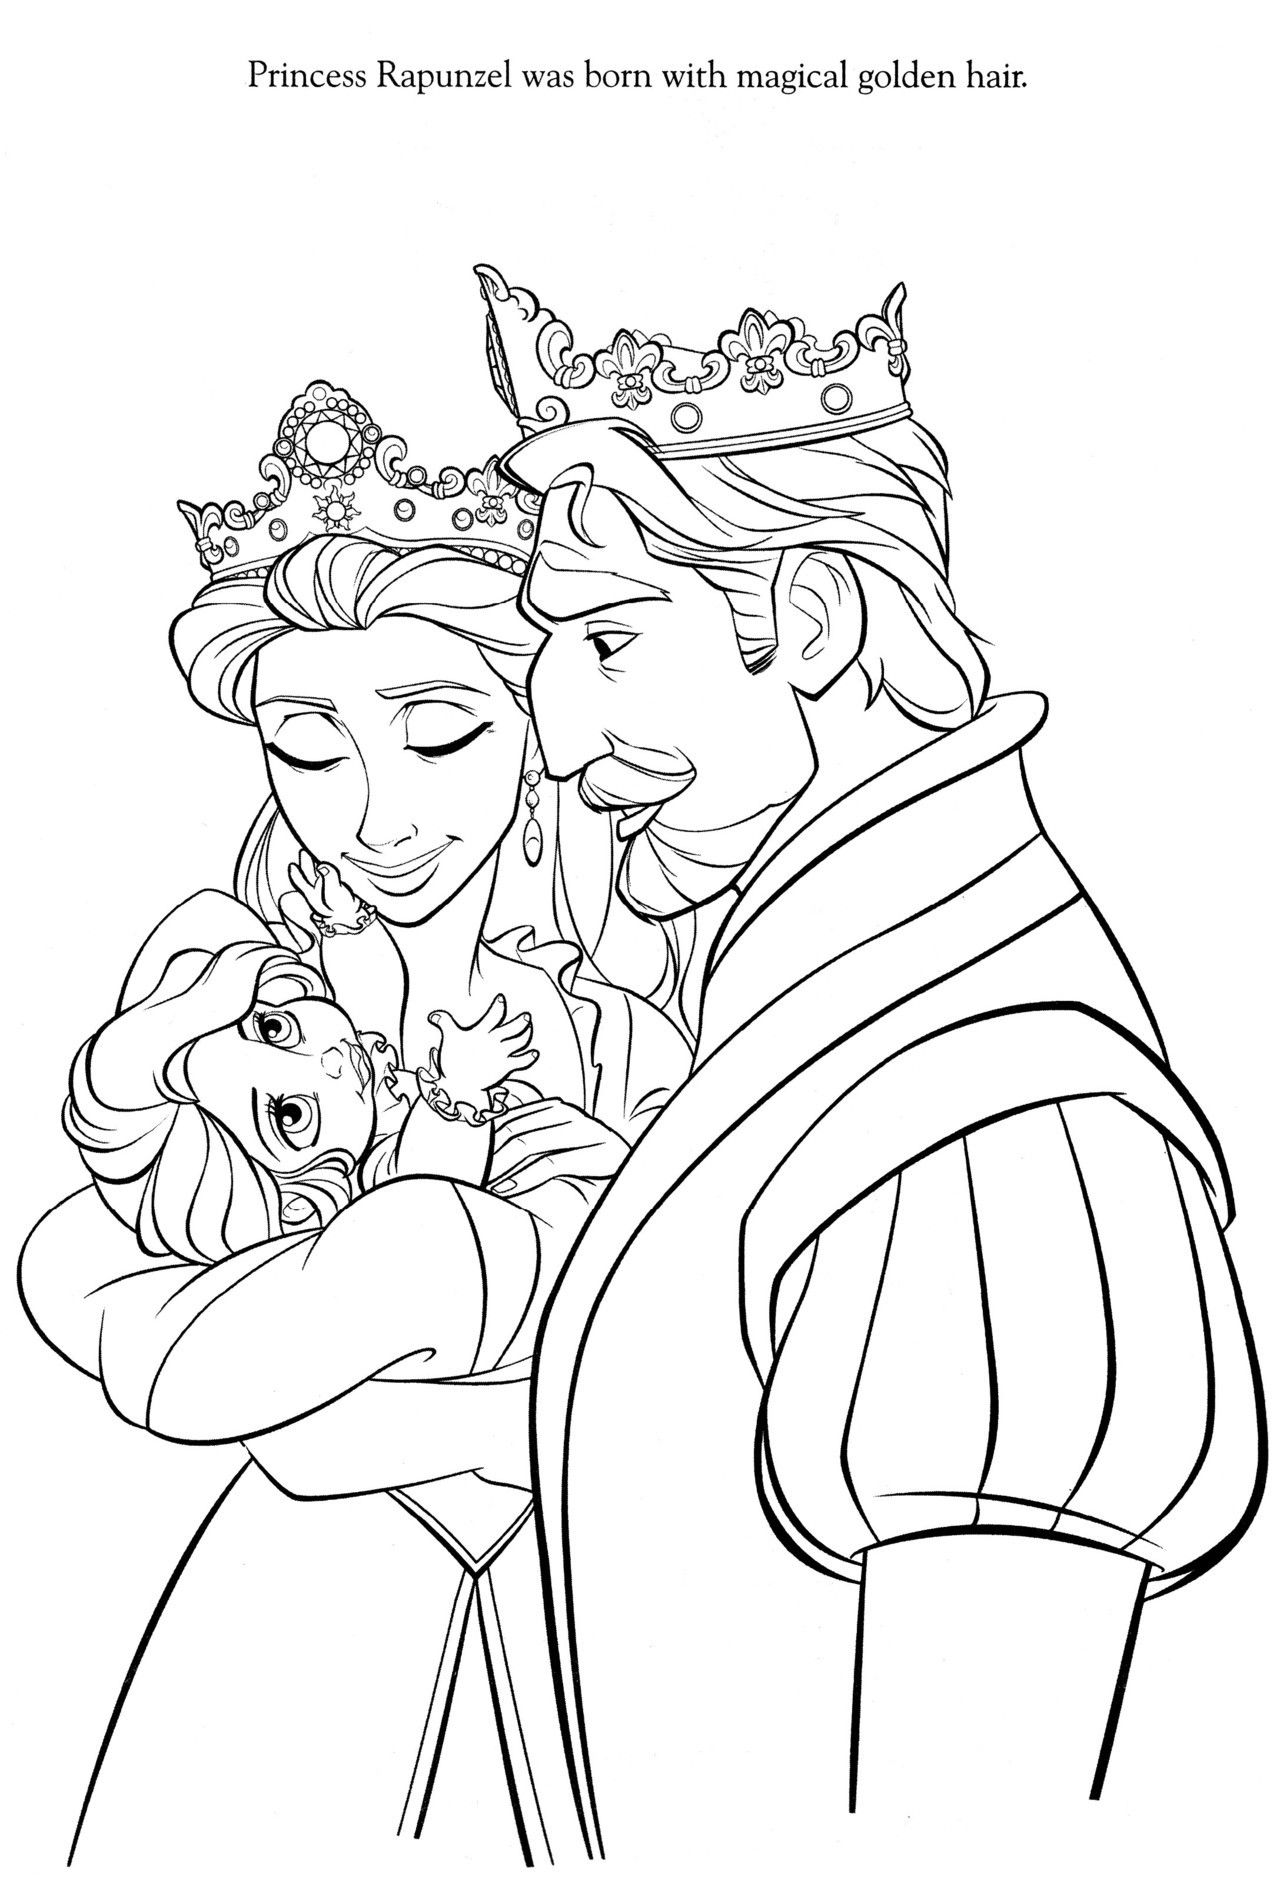 Pin By Mini On Colorsheets Tangled Coloring Pages Rapunzel Coloring Pages Disney Coloring Pages